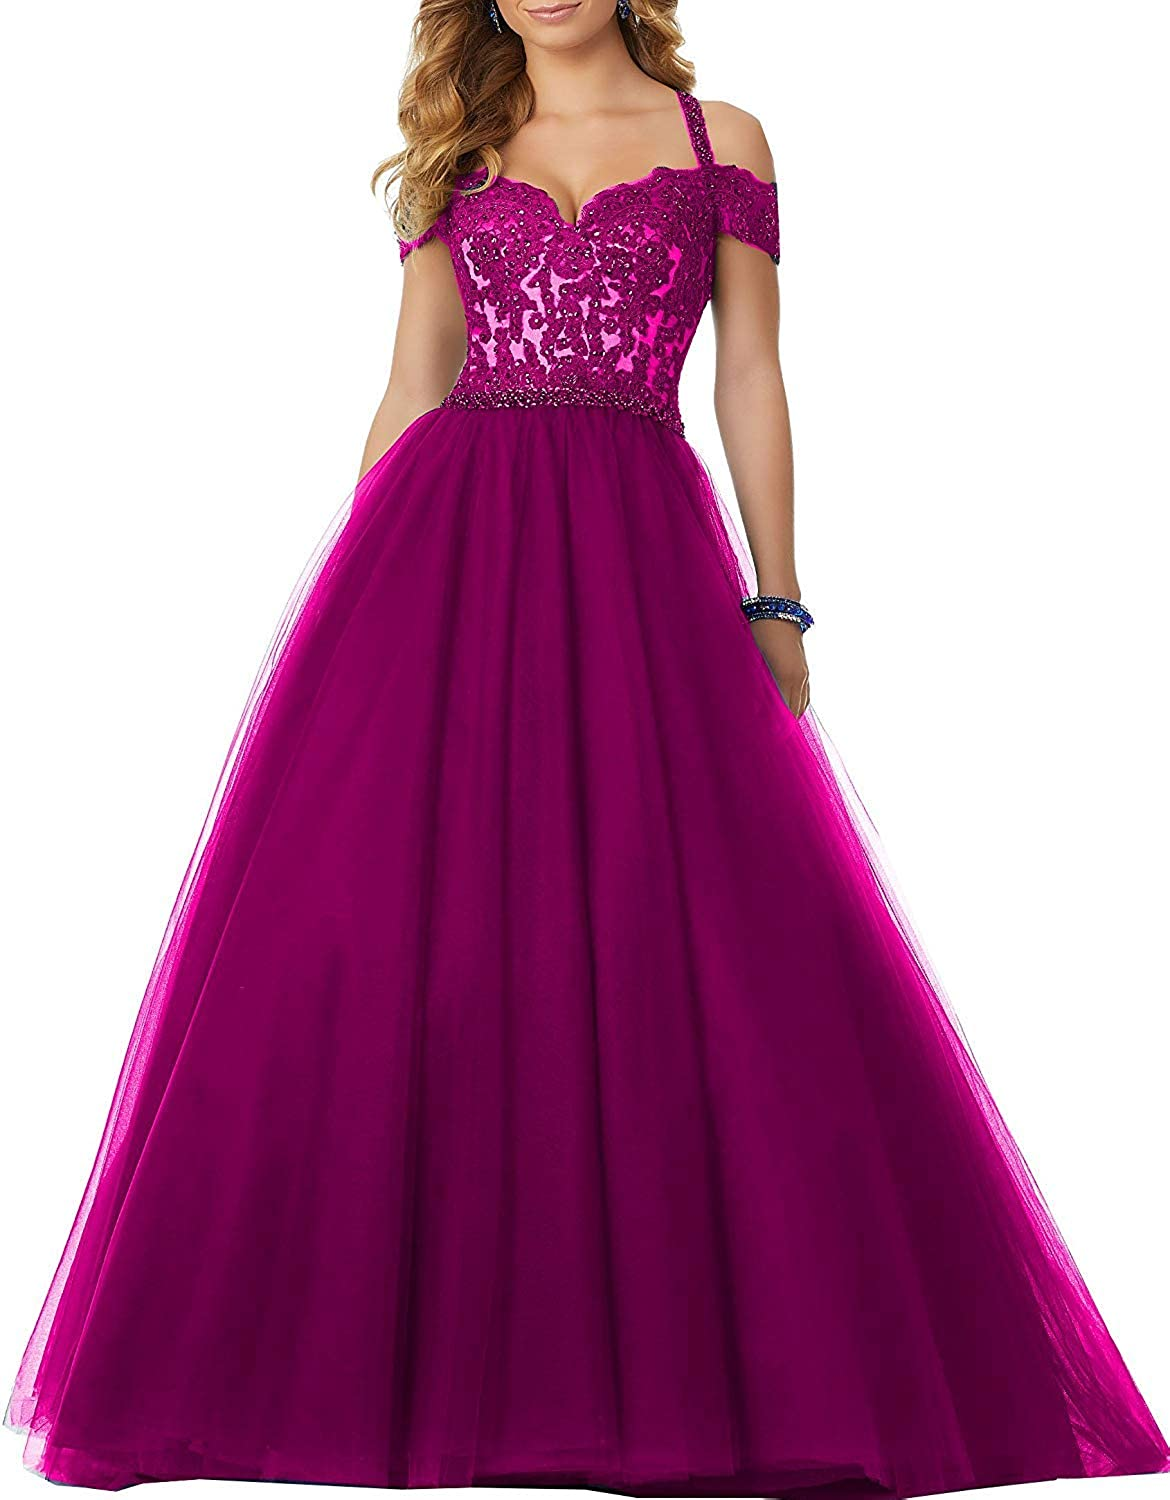 Fuchsia Sophie Women's Long Sweetheart Tulle Quinceanera Dresses 2019 Beaded Prom Ball Gowns Princess S258